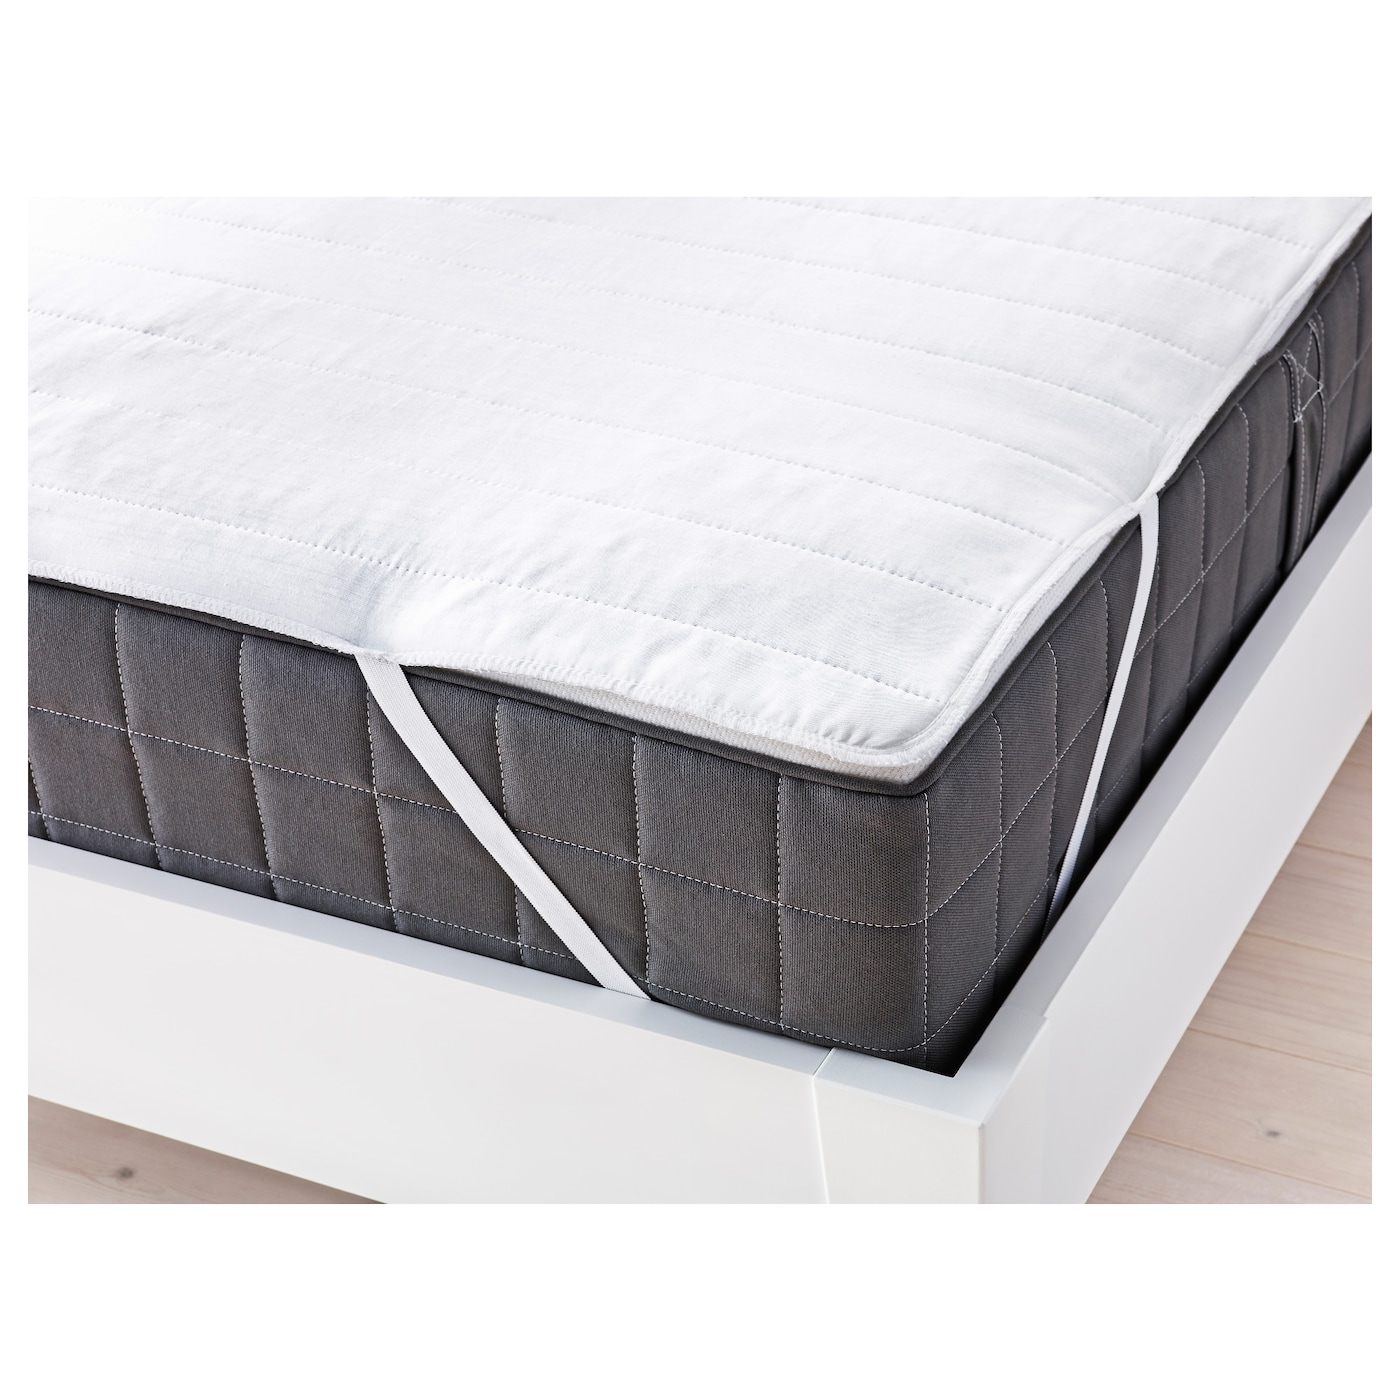 foam mattresses sultan ikea latex haugesund best mattress and large memory rolled futon size review reviews of